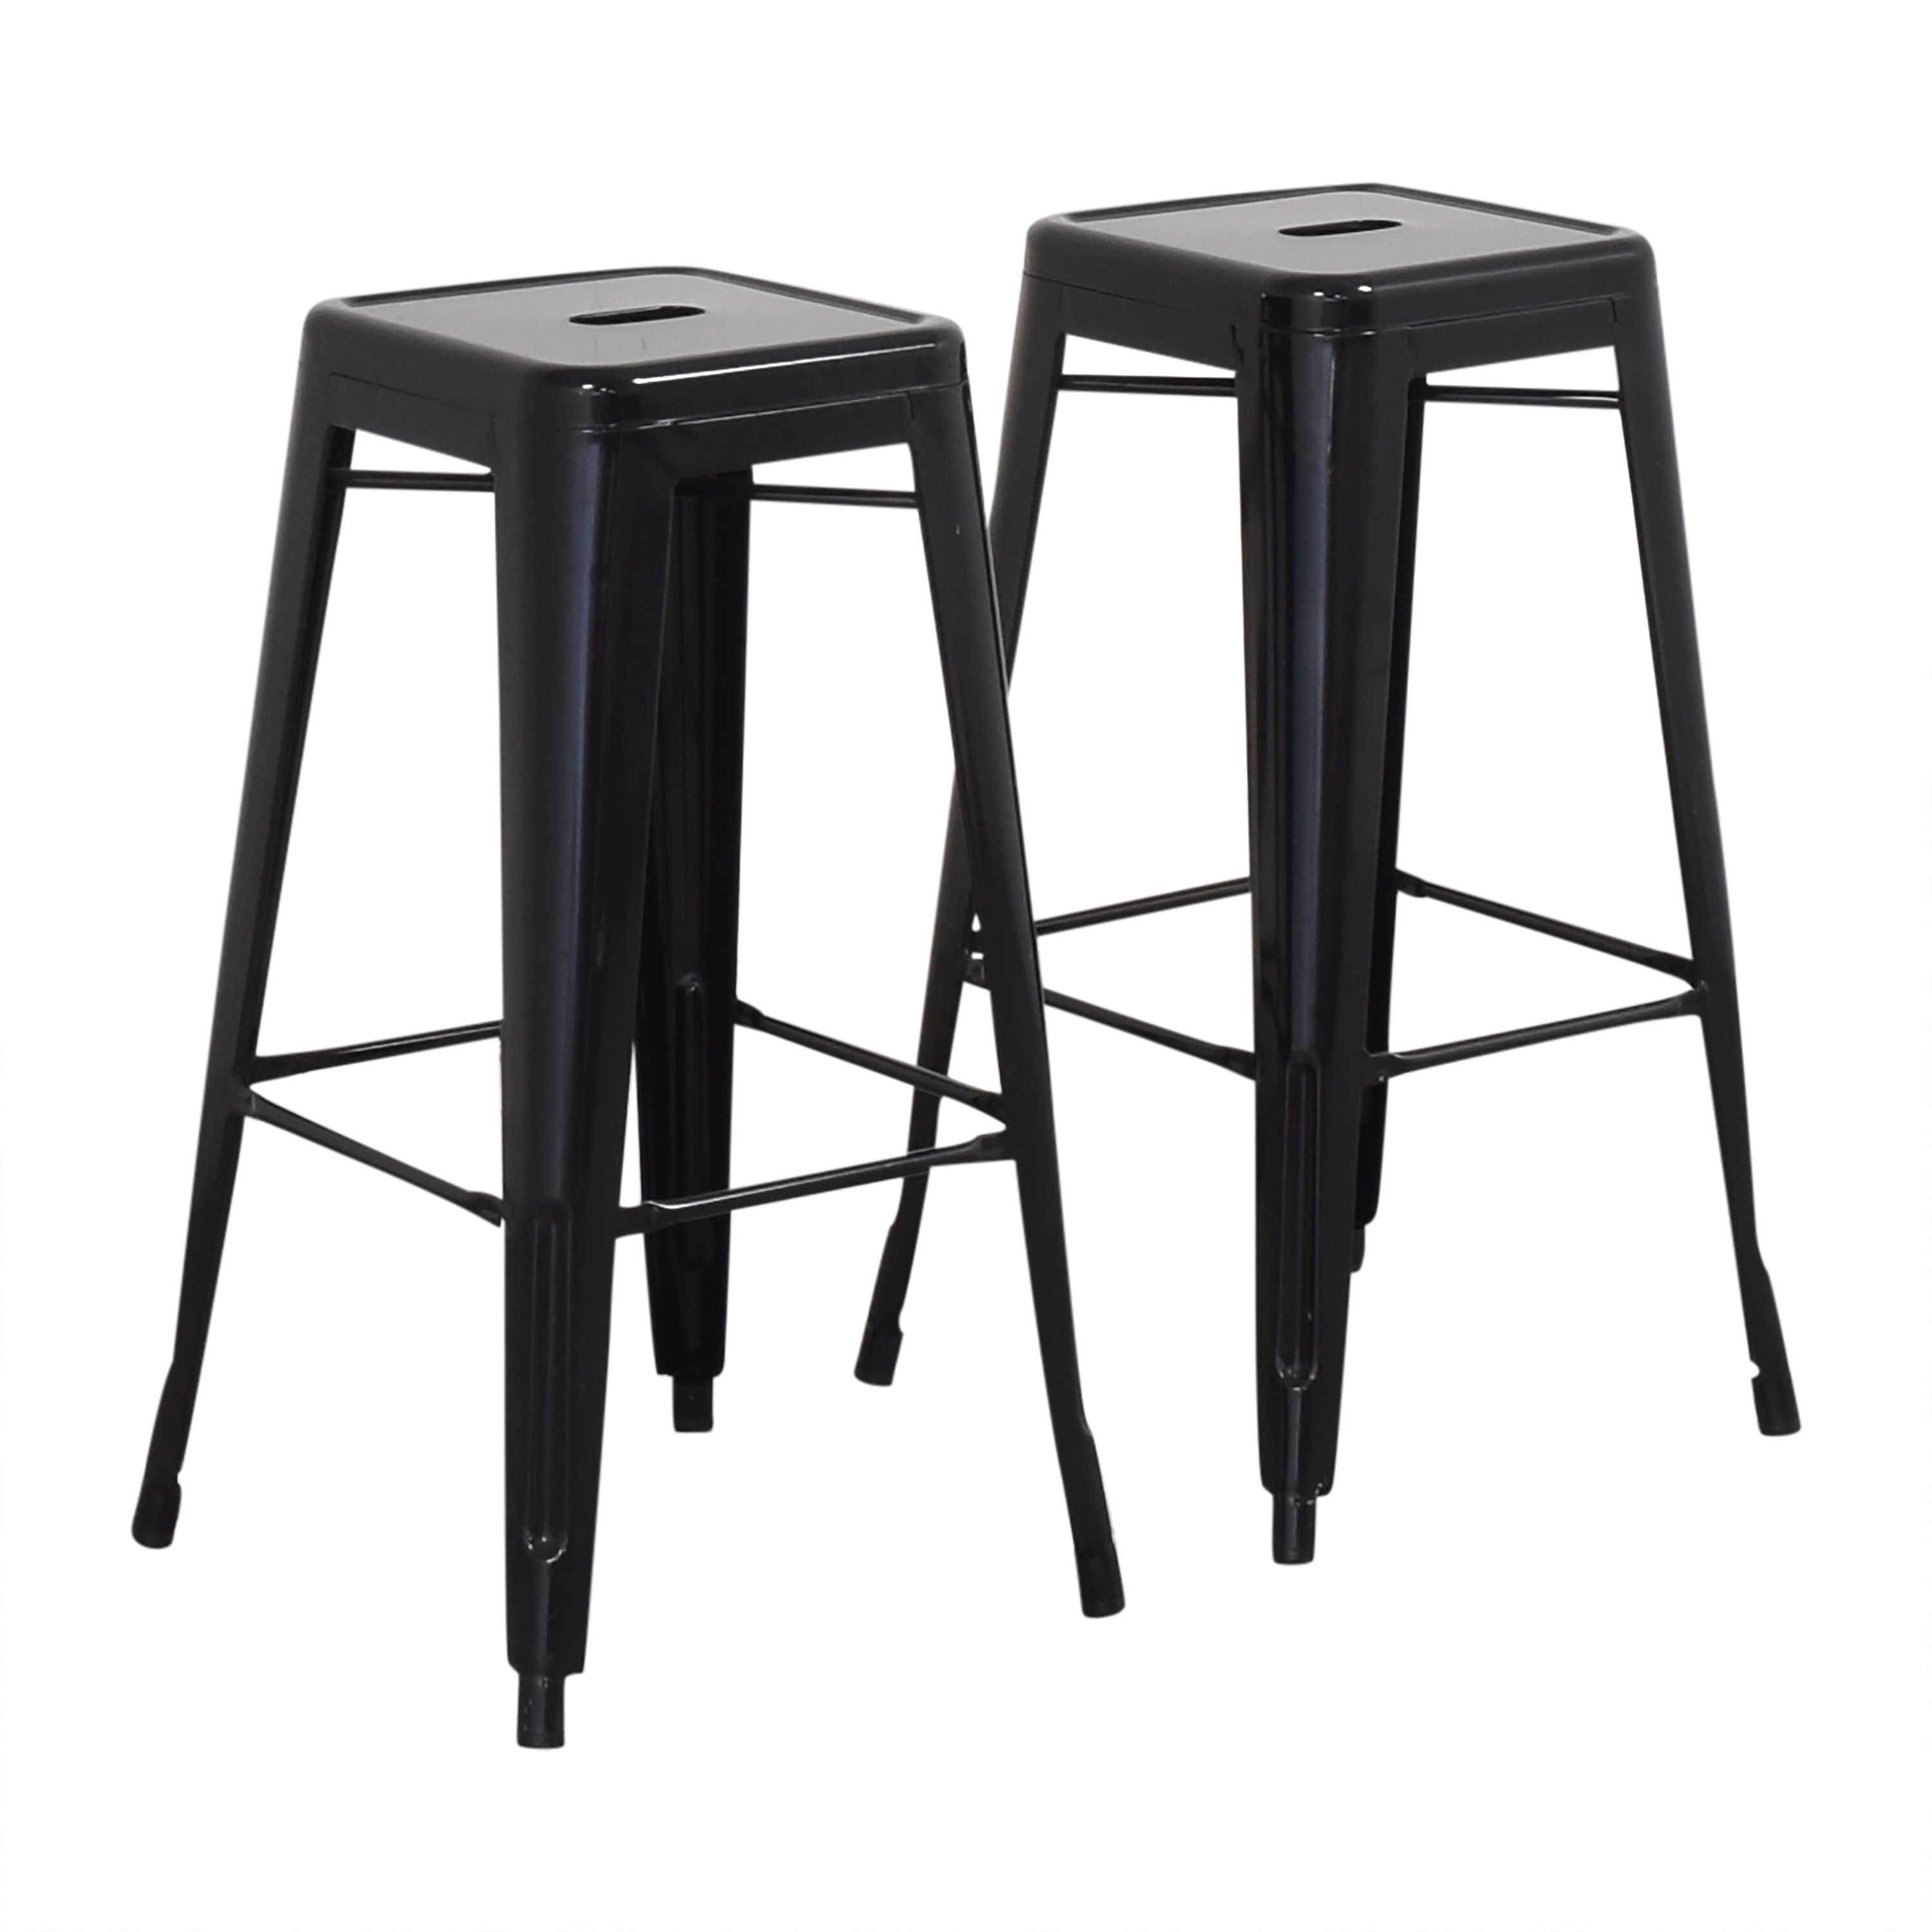 Dimensions Dimensions Backless Bar Stools price